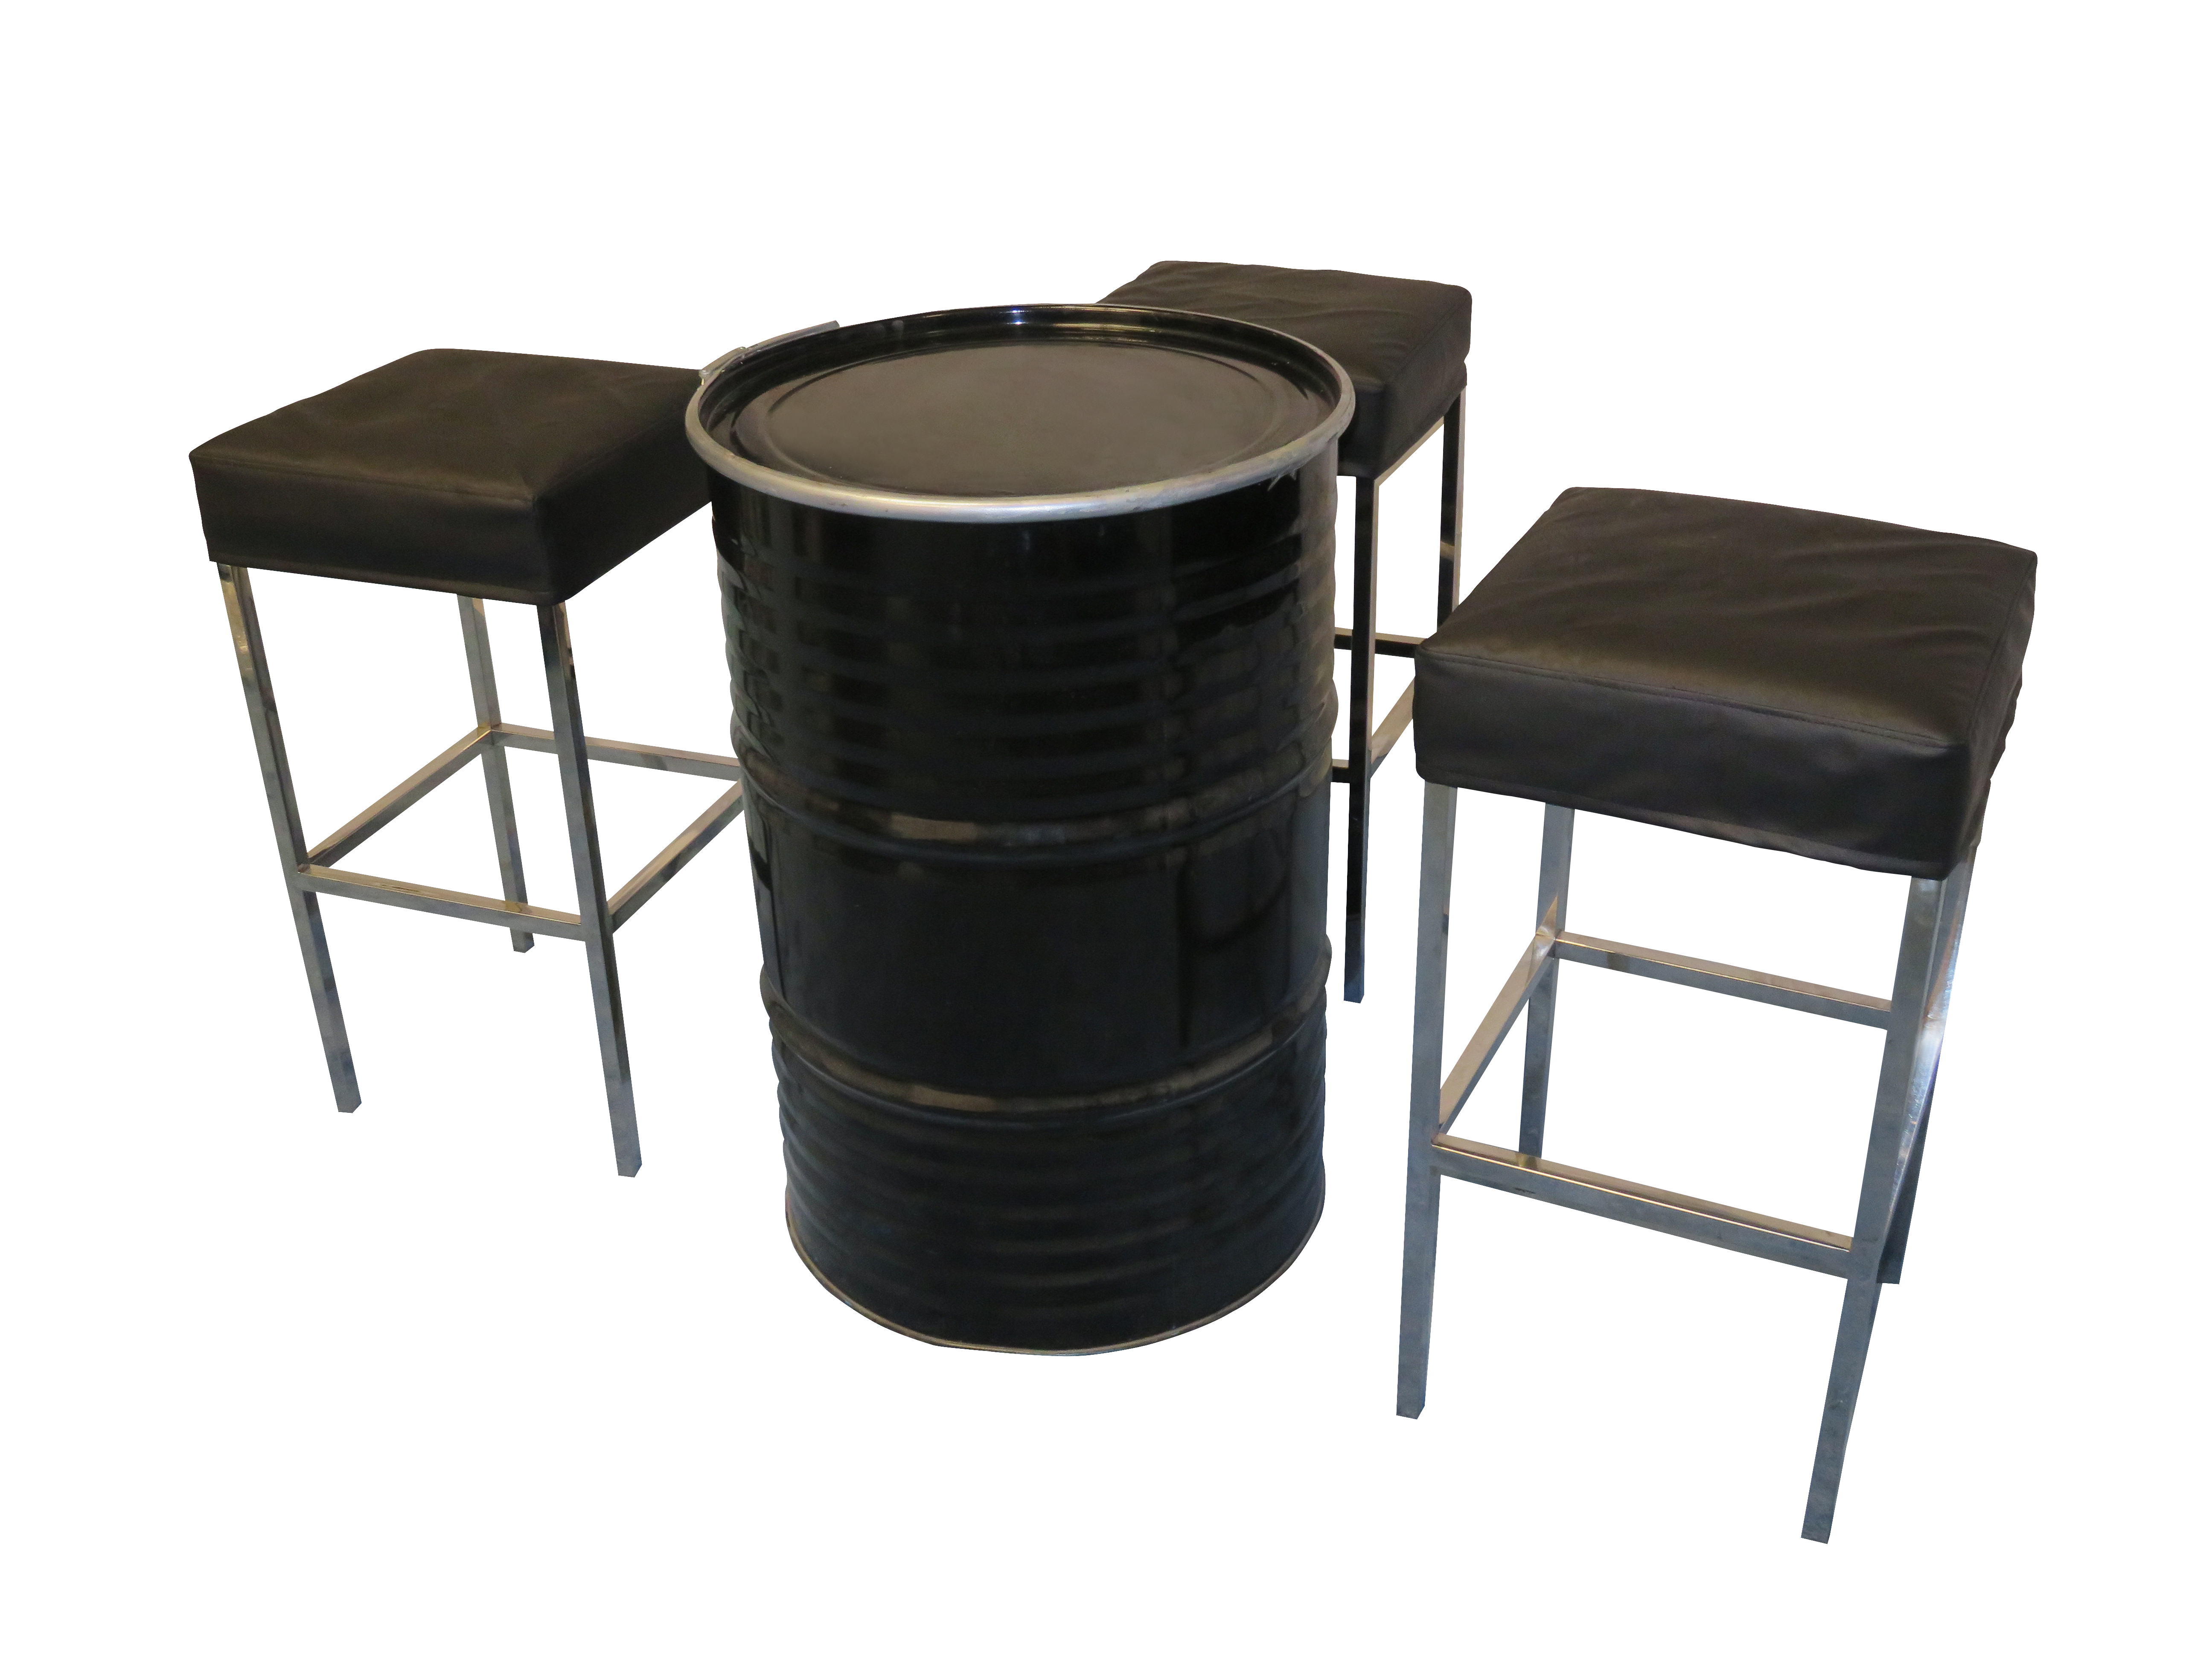 Rent Or Buy Black Barcelona Bar Stool Event Rental Dubai  : Black Barcelona Bar Stool with Collins Drum Cocktail Table from areeka.ae size 5184 x 3888 jpeg 3259kB